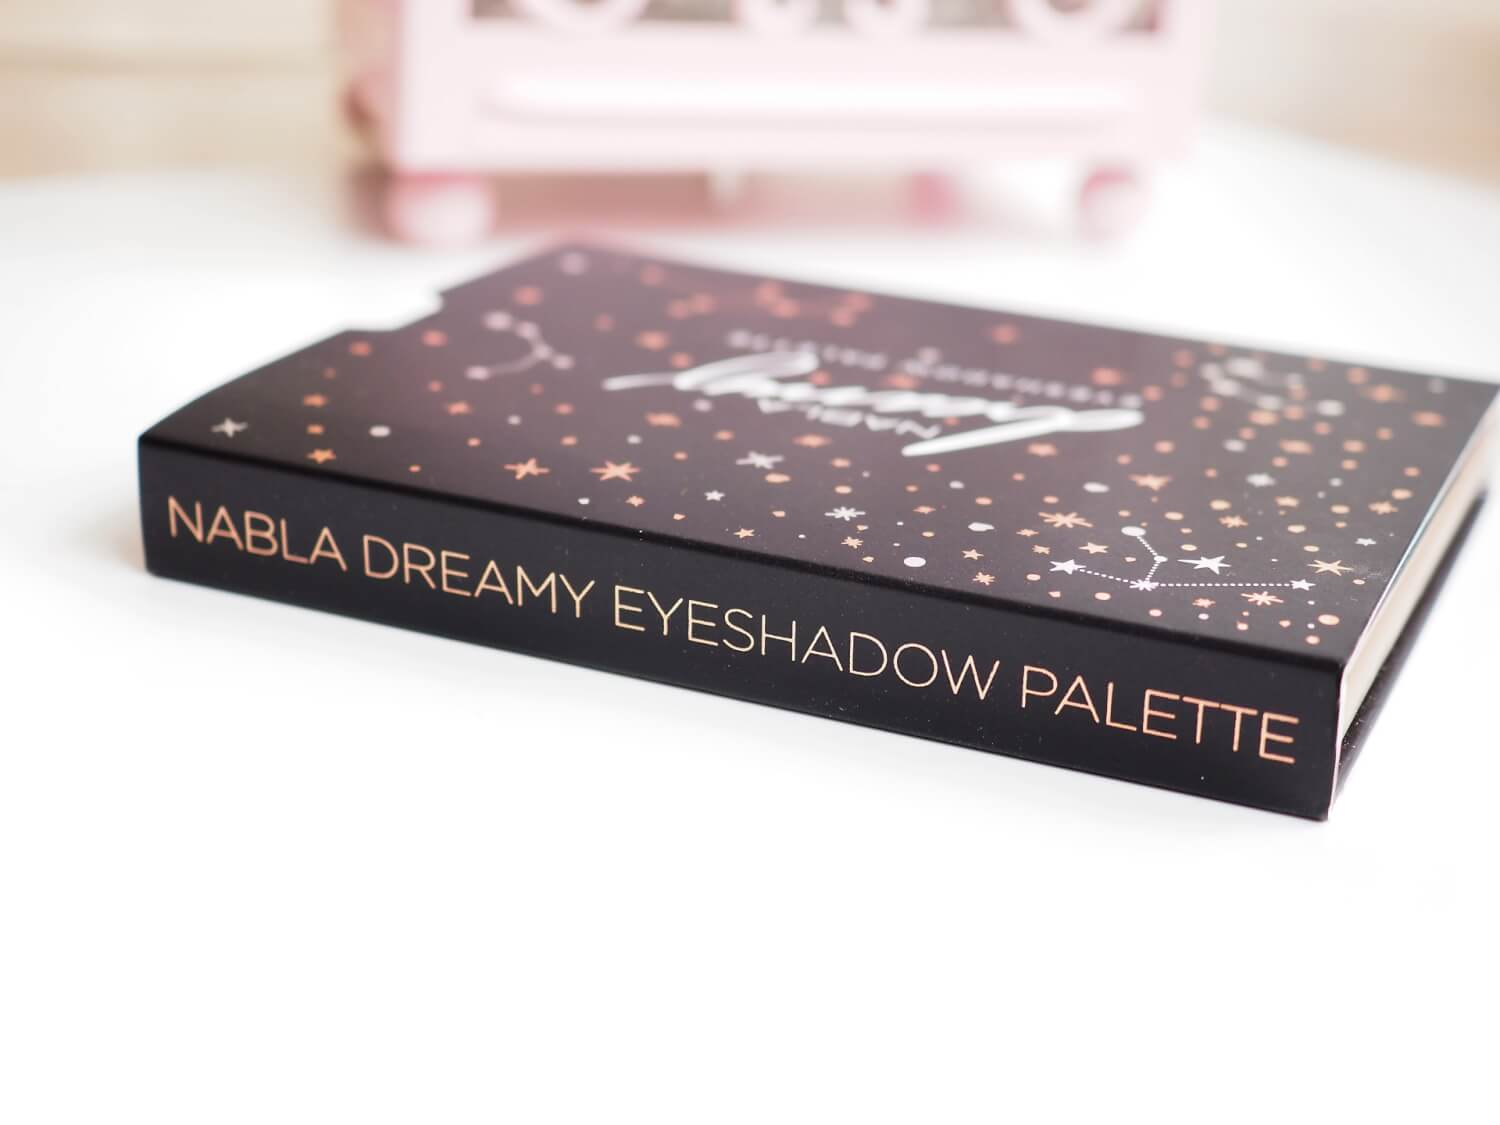 NABLA DREAMY EYESHADOW PALETTE